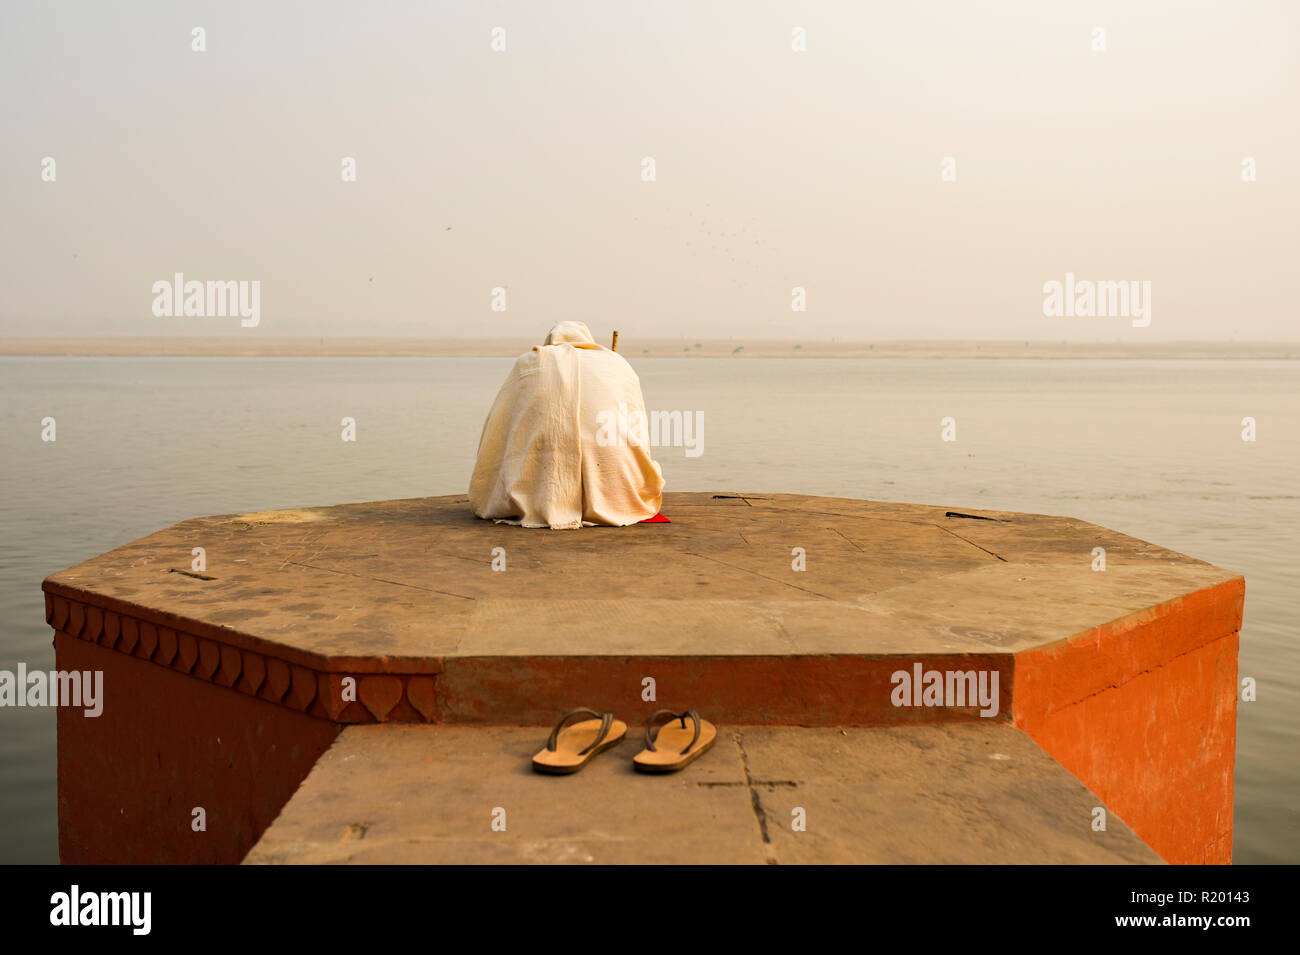 A holy man dressed in white is praying and meditating on one of the many Ghats of Varanasi in front of the sacred river Ganges, India. Stock Photo